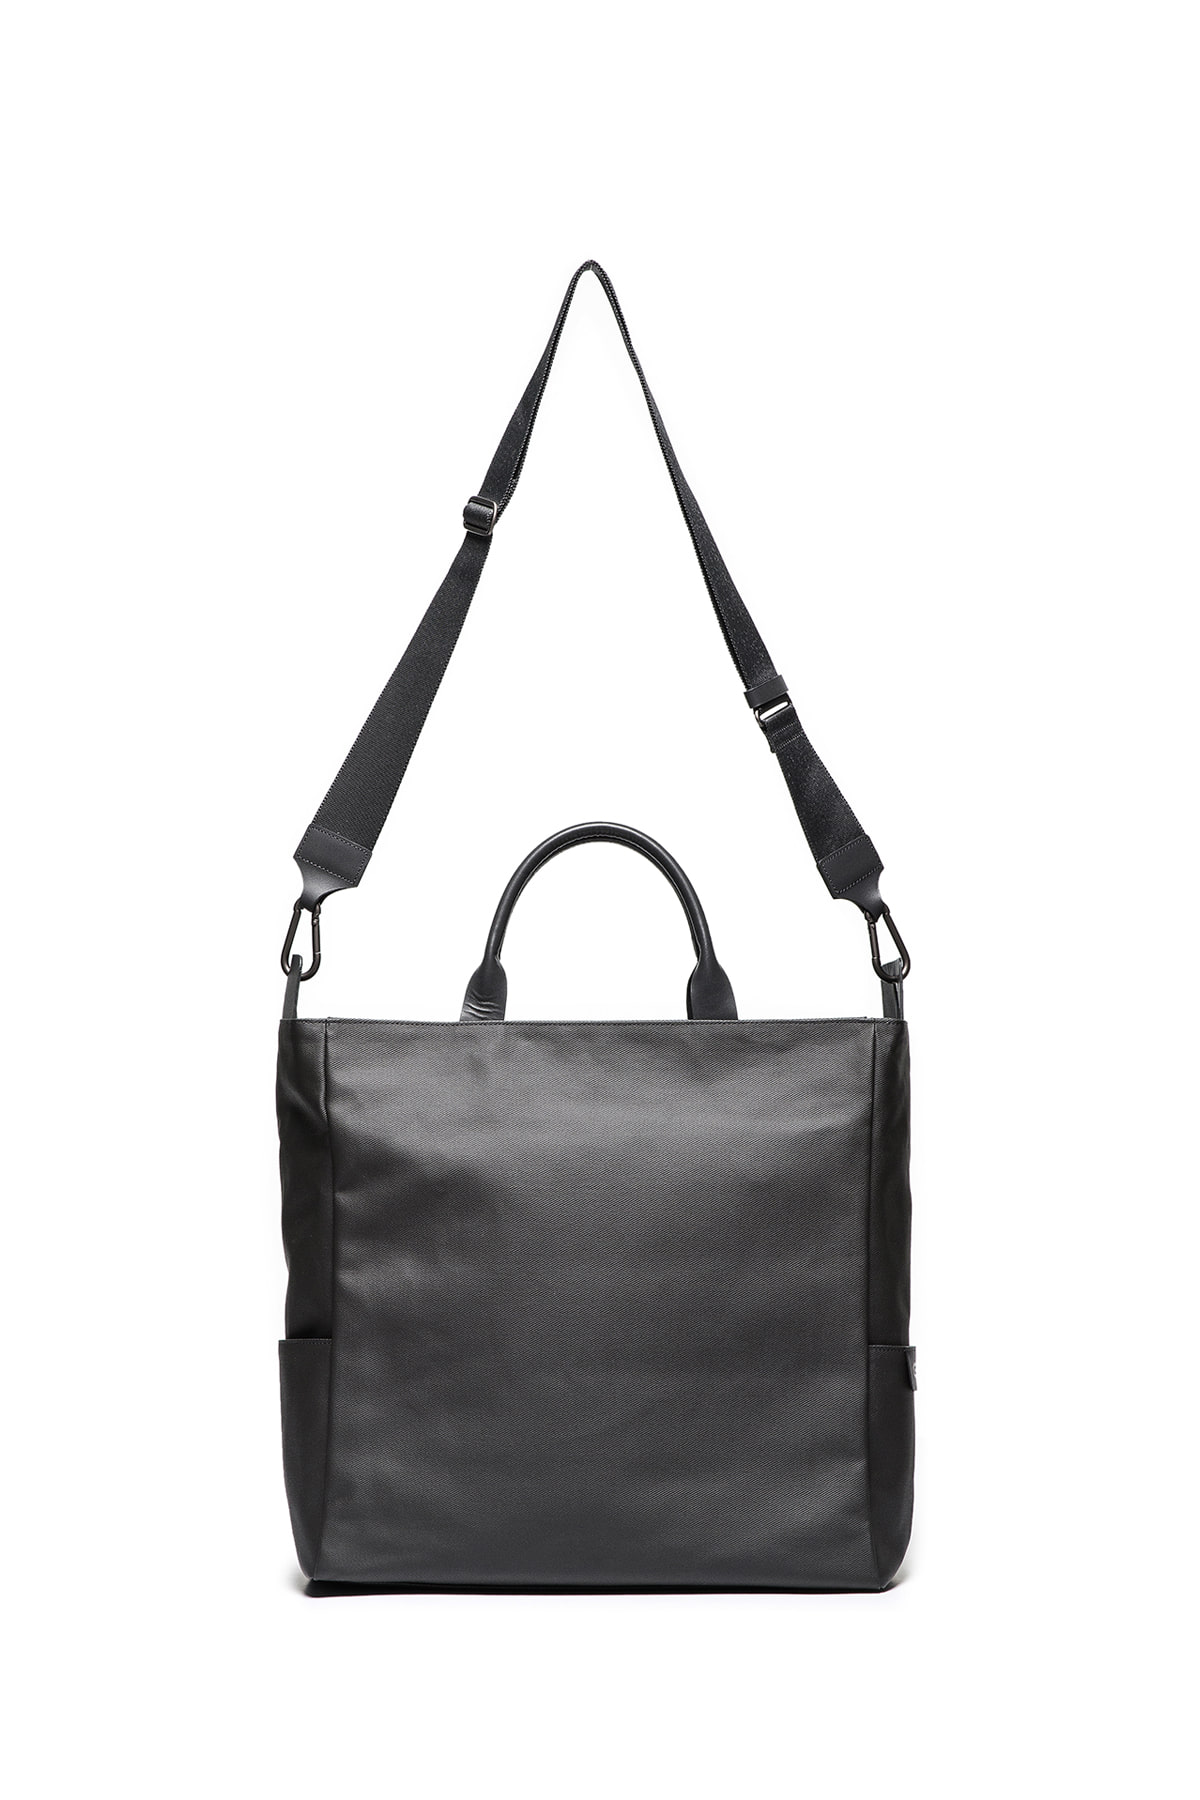 GEAR3 : CODE3-014-14 Tote Bag (Black)